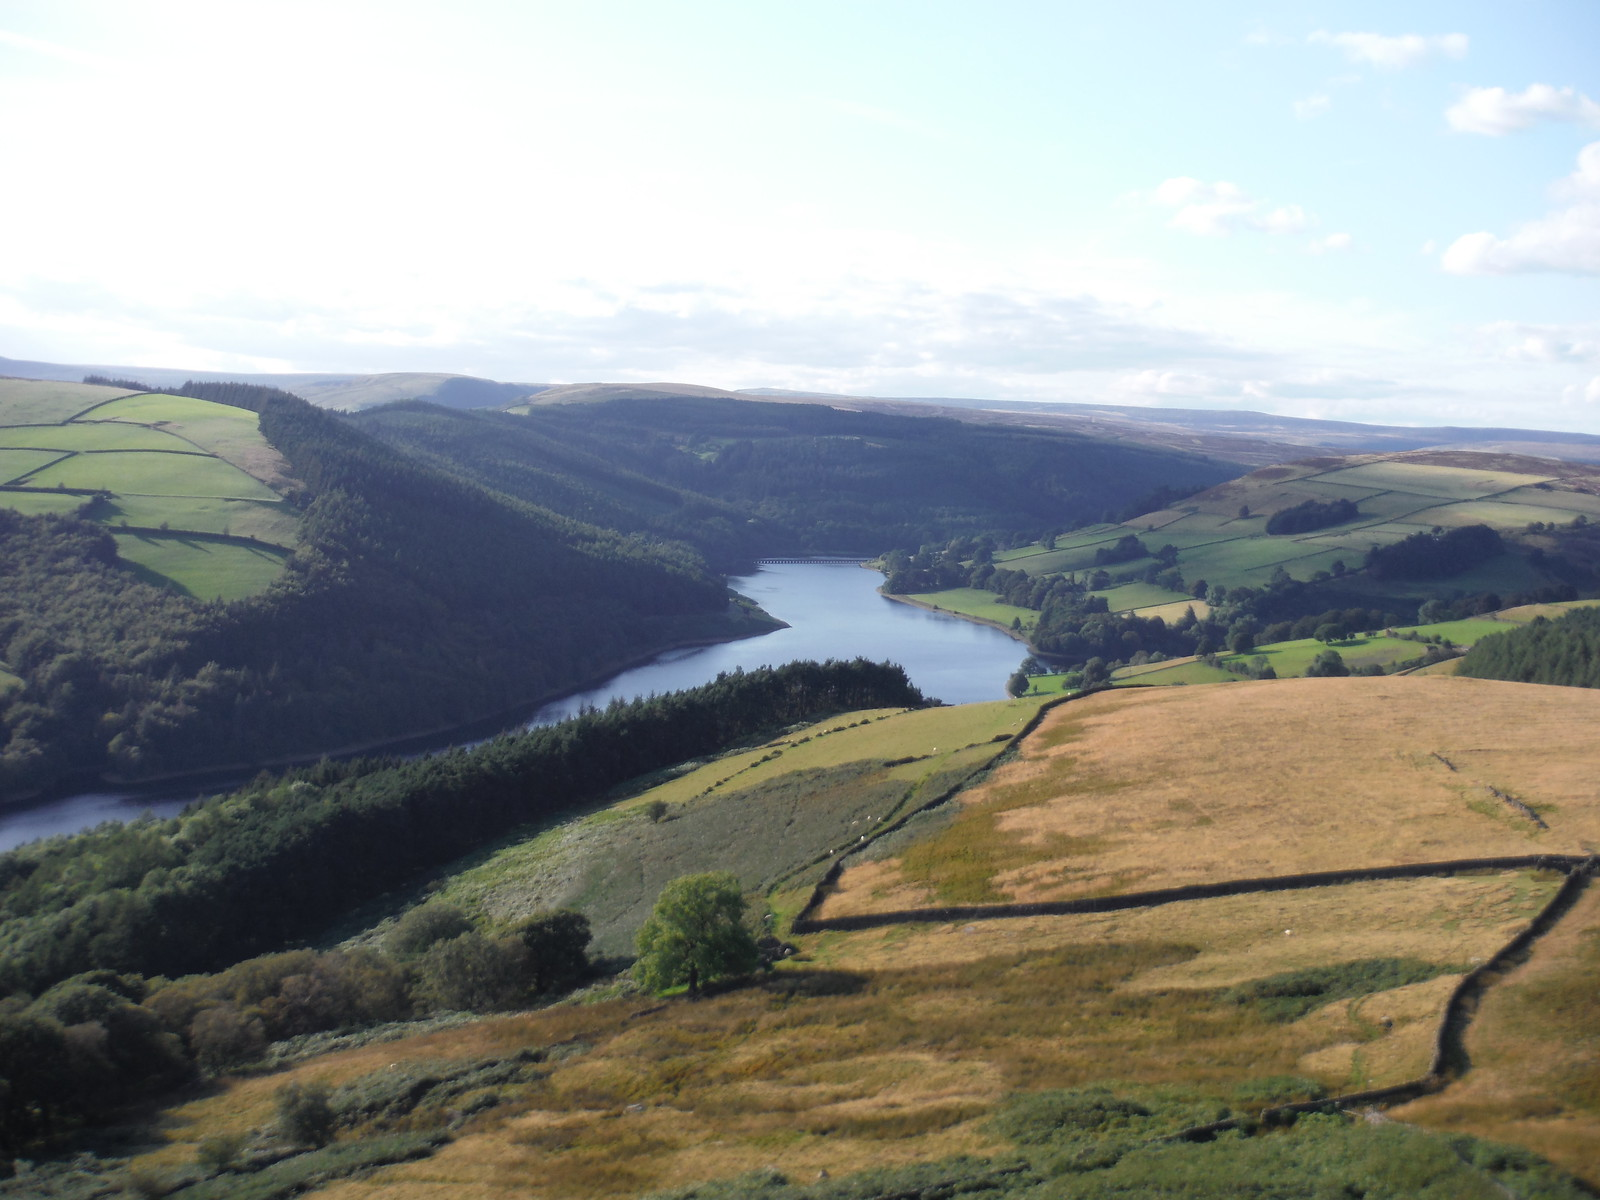 Evening View up Ladybower Reservoir, from Viewpoint by Six-Way Junction SWC Walk 348 - Ladybower Inn Circular (via Derwent Edges and Strines)